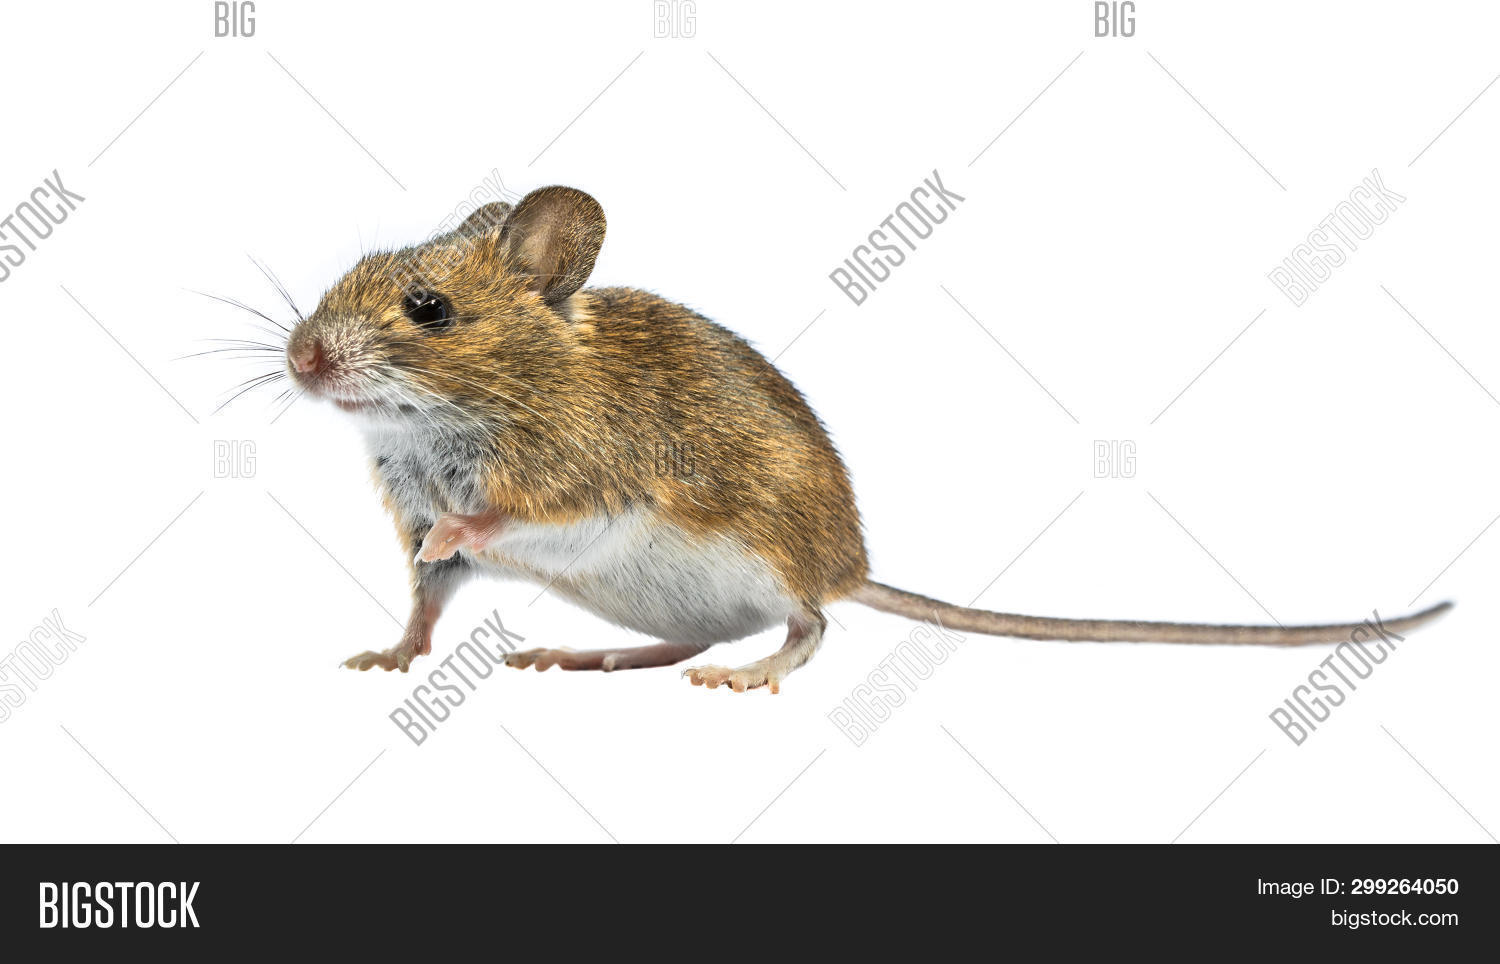 action,activity,adorable,animal,apodemus,at,baby,background,beautiful,camera,charming,clipping,concept,contact,curious,cute,europe,european,eye,face,field,funny,hamster,head,isolated,little,looking,mammal,mice,mous,mouse,nature,path,pest,pet,portrait,rat,rodent,small,sylvaticus,whiskers,white,wood